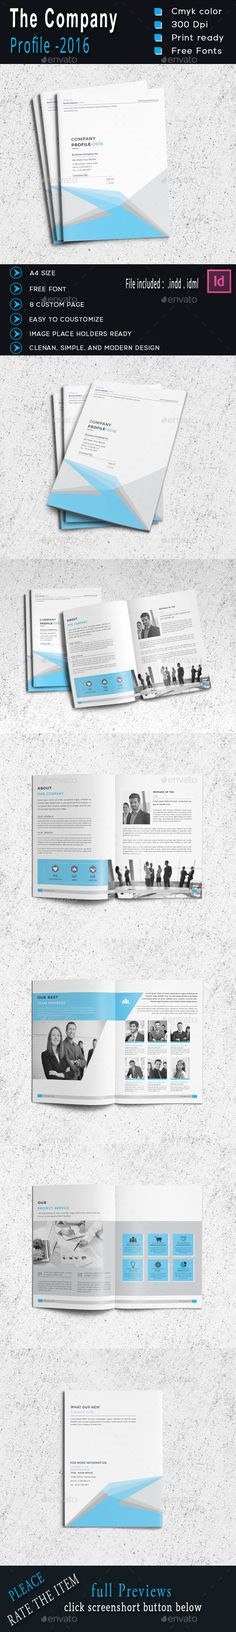 The Company Profile Brochure Template InDesign INDD. Download here: https://graphicriver.net/item/the-company-profile/16957583?ref=ksioks